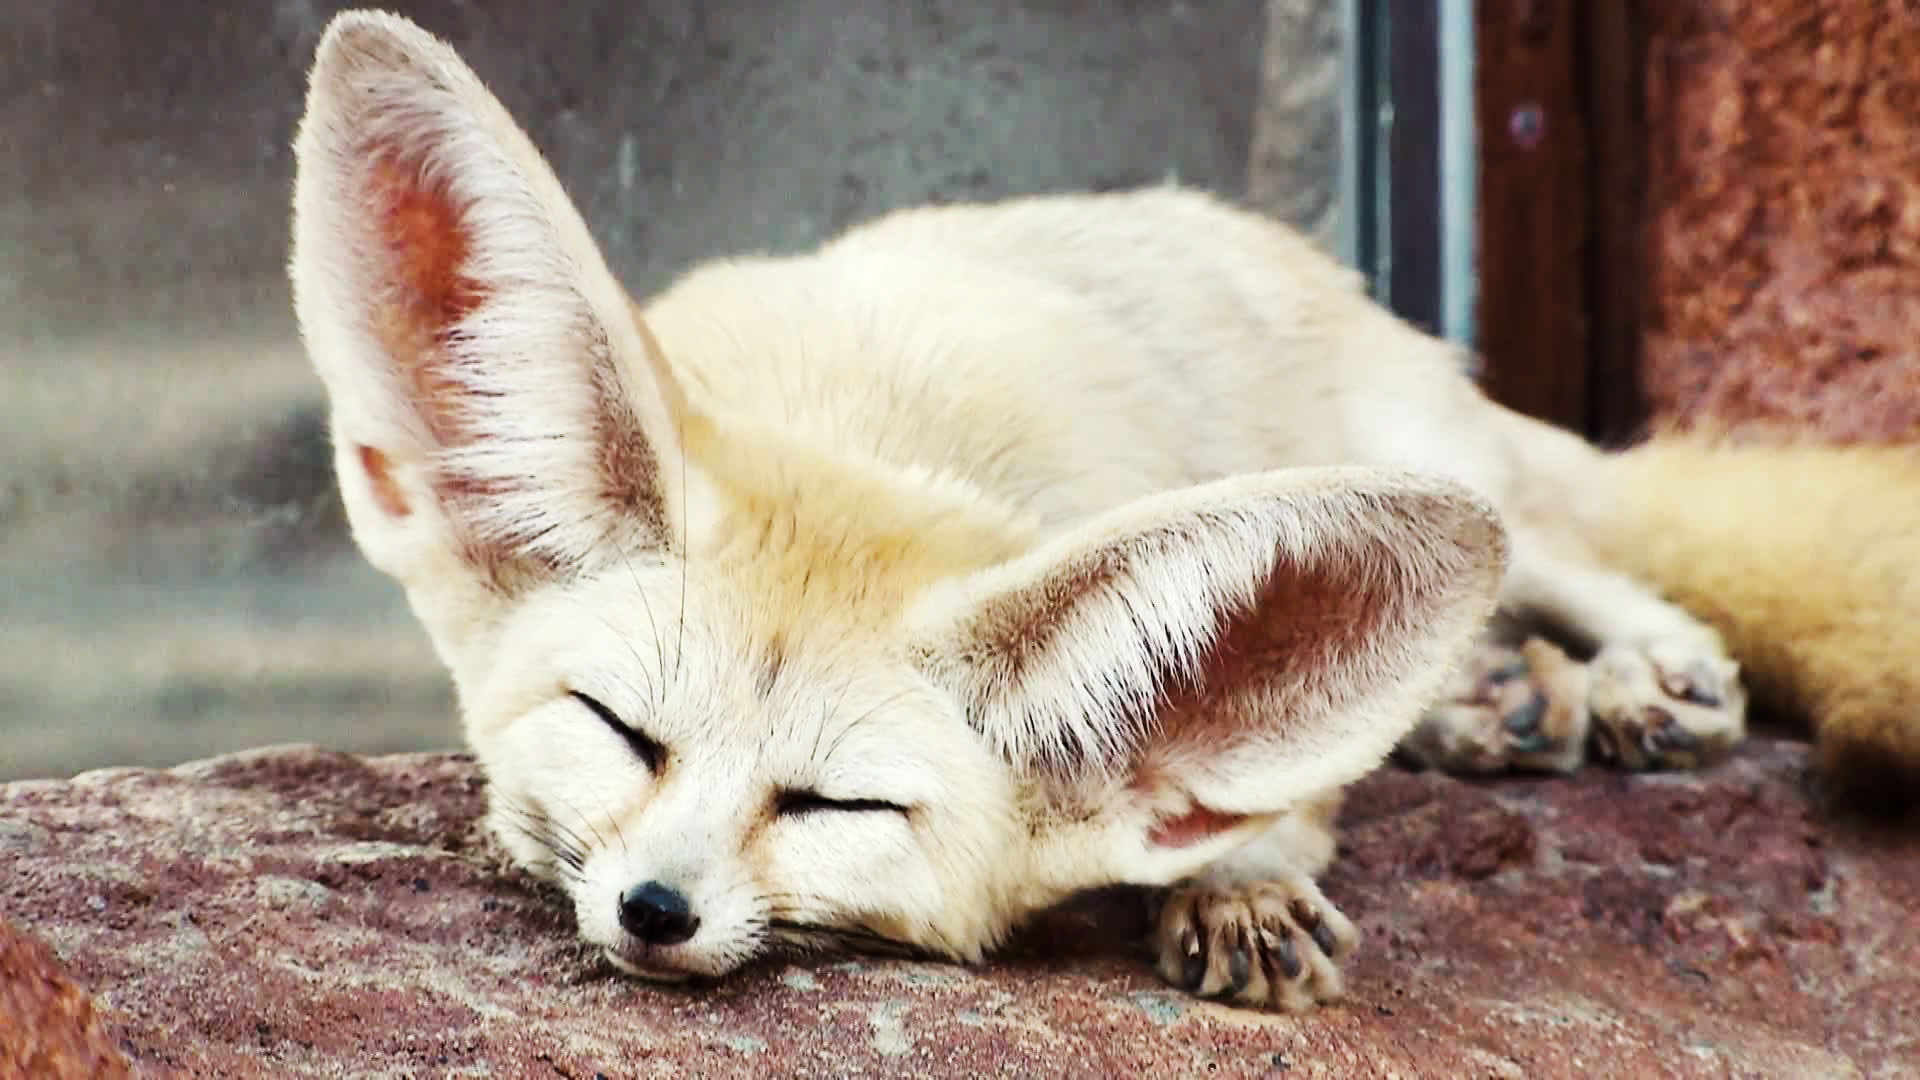 Absurd Creatures: The Fennec Fox Is So Cute I Think I Might Literally Die | WIRED